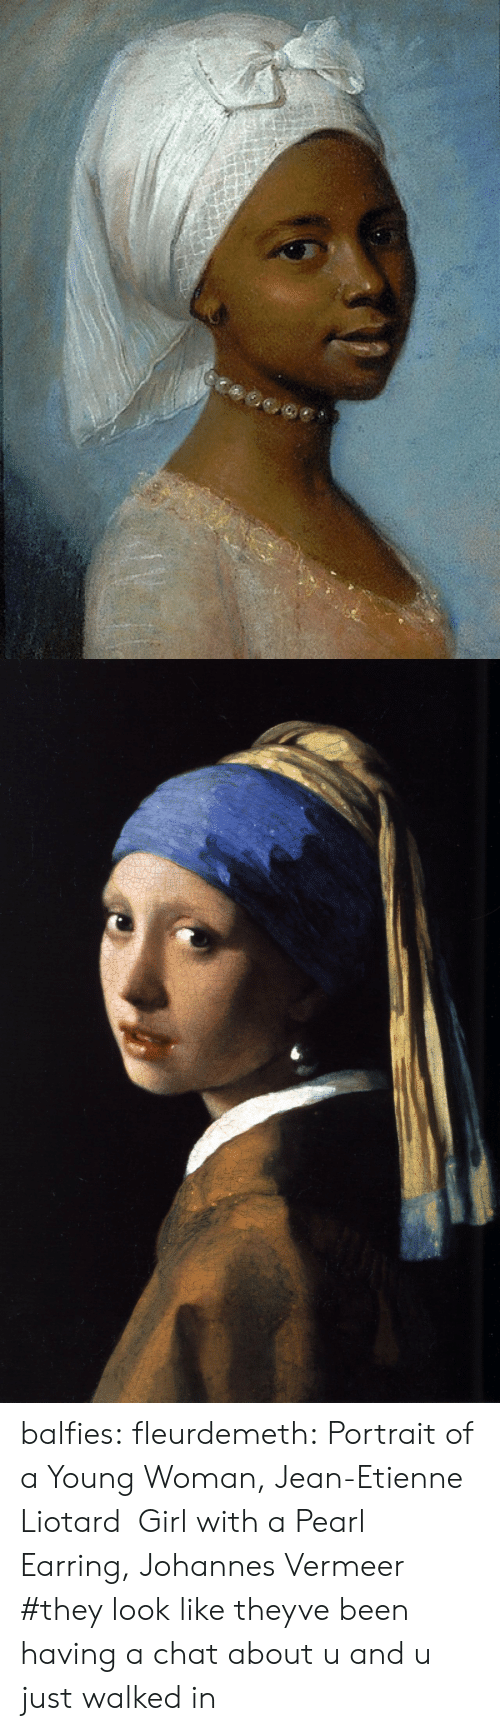 jean: balfies:  fleurdemeth:  Portrait of a Young Woman, Jean-Etienne Liotard Girl with a Pearl Earring, Johannes Vermeer   #they look like theyve been having a chat about u and u just walked in